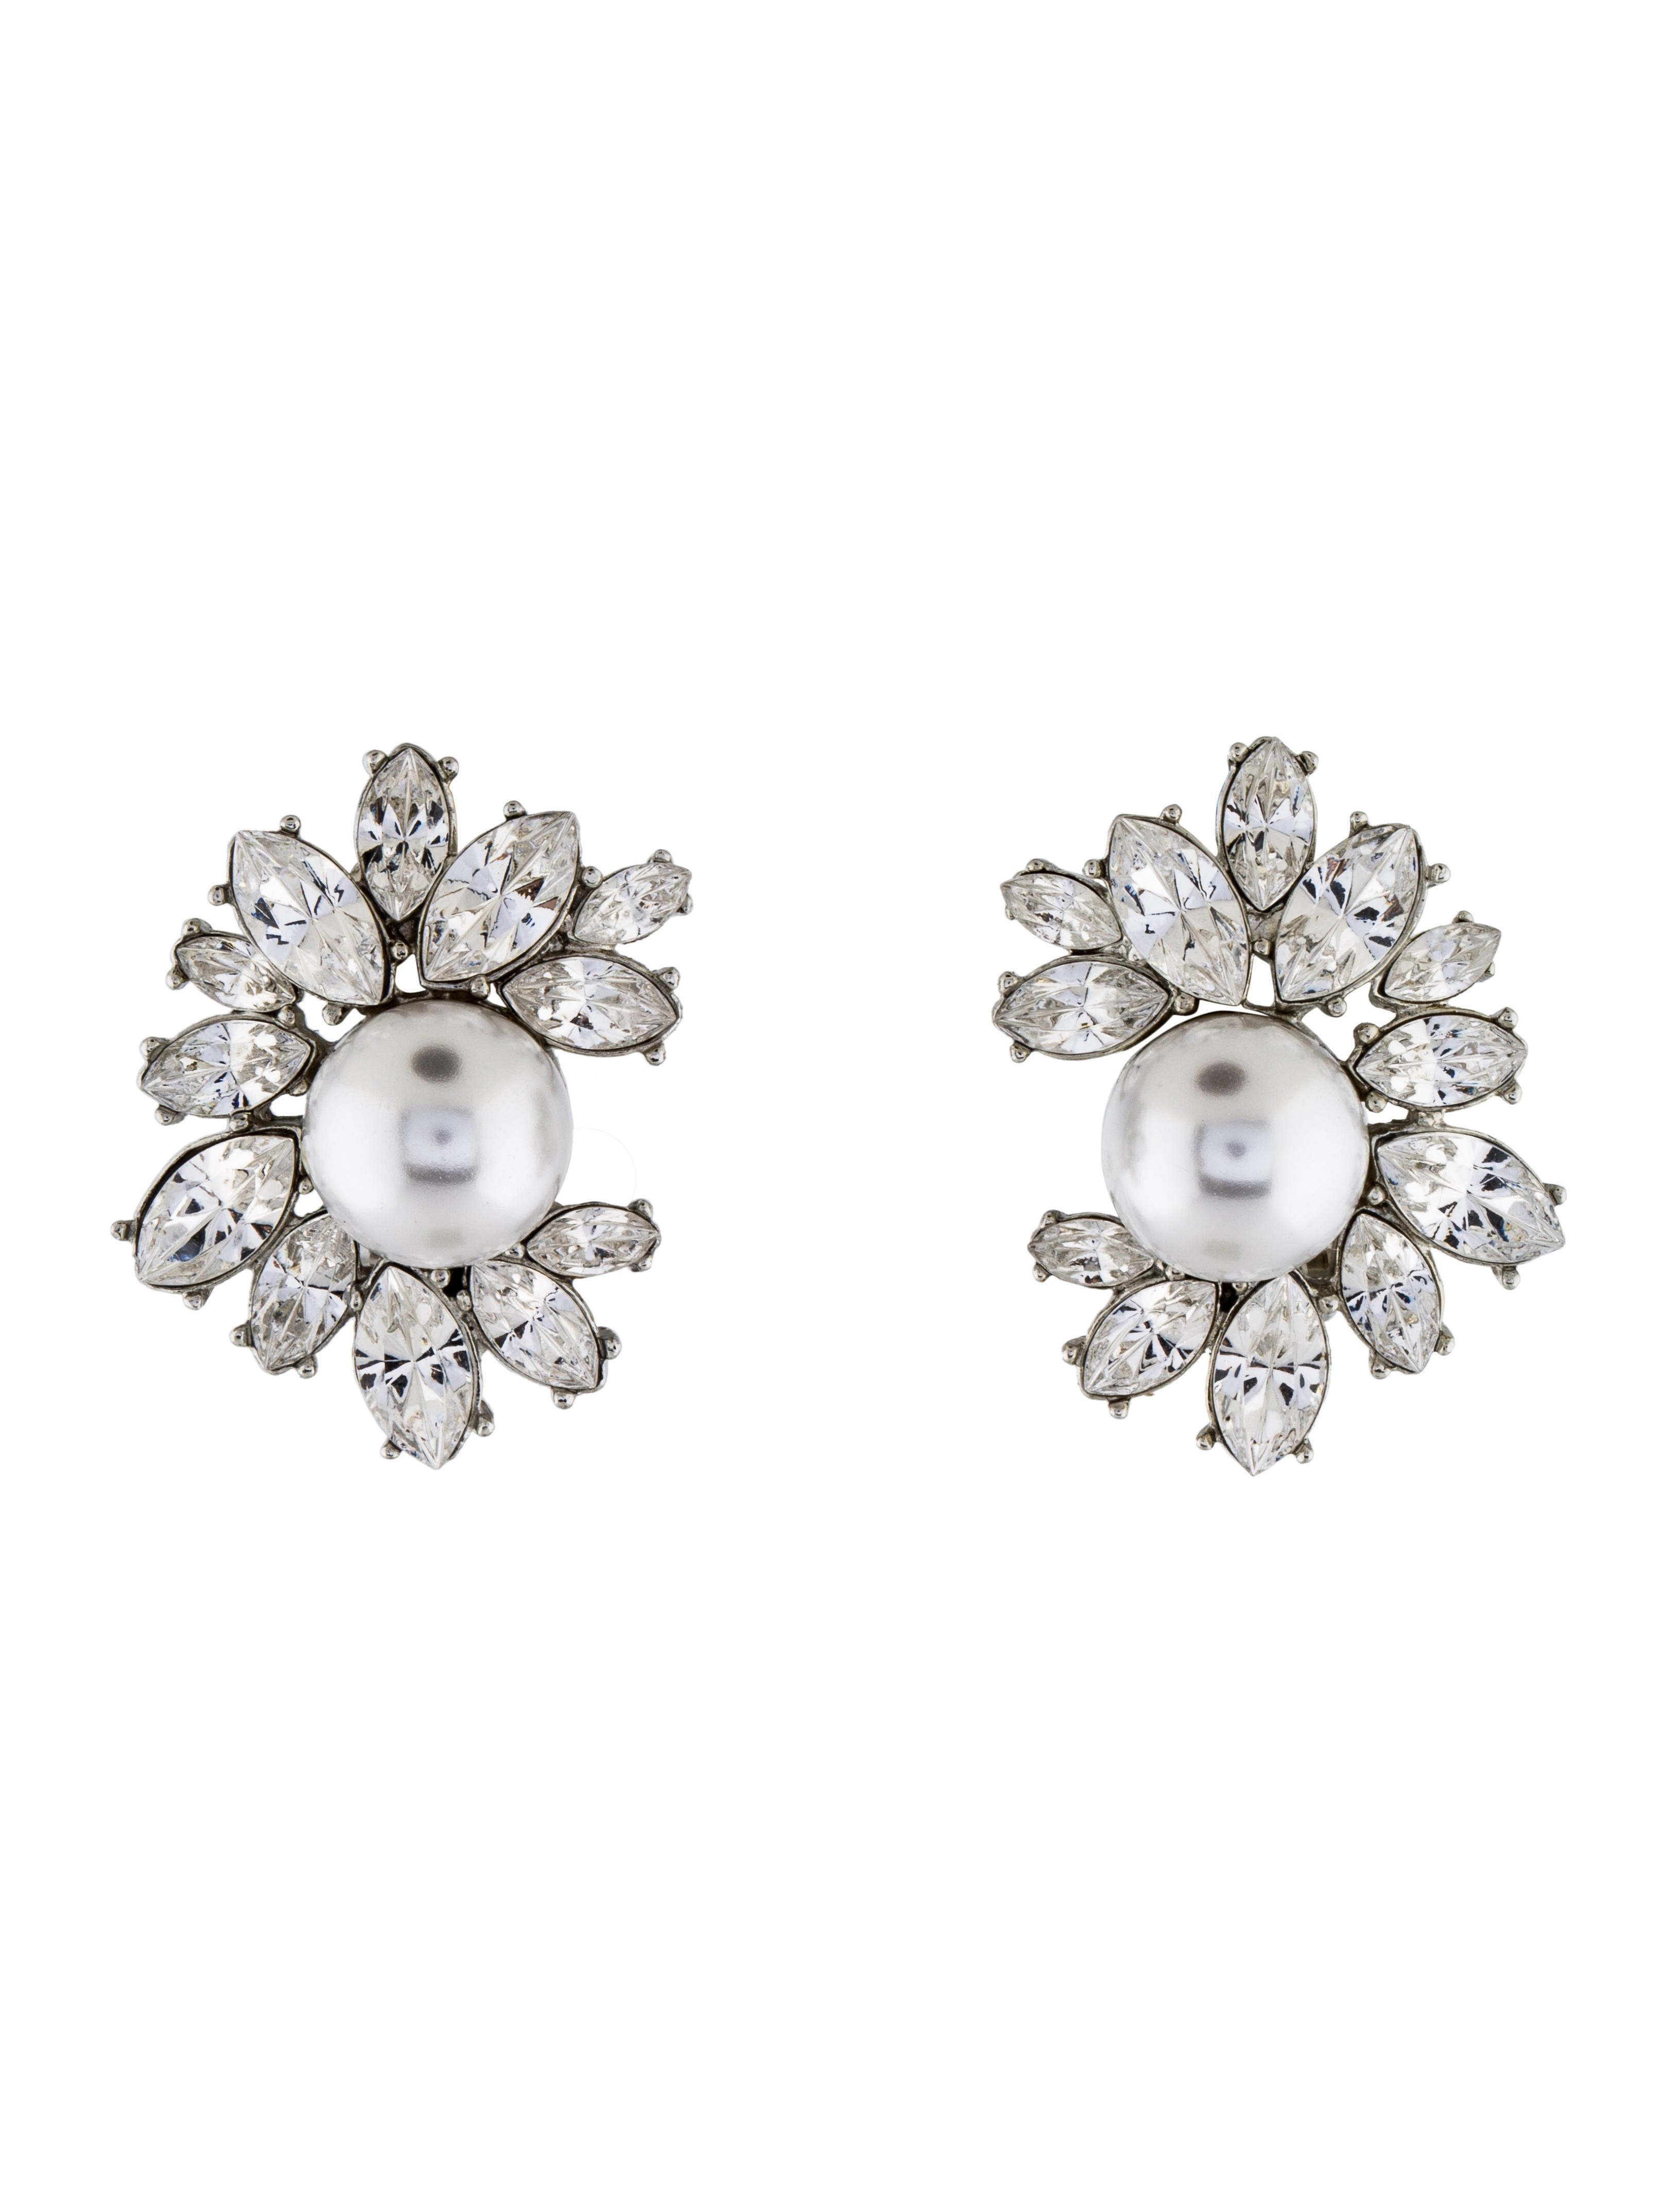 Kenneth Jay Lane Crystal Top With Pearl Bottom Earrings Crystal/white pearl kUO92vdQuy